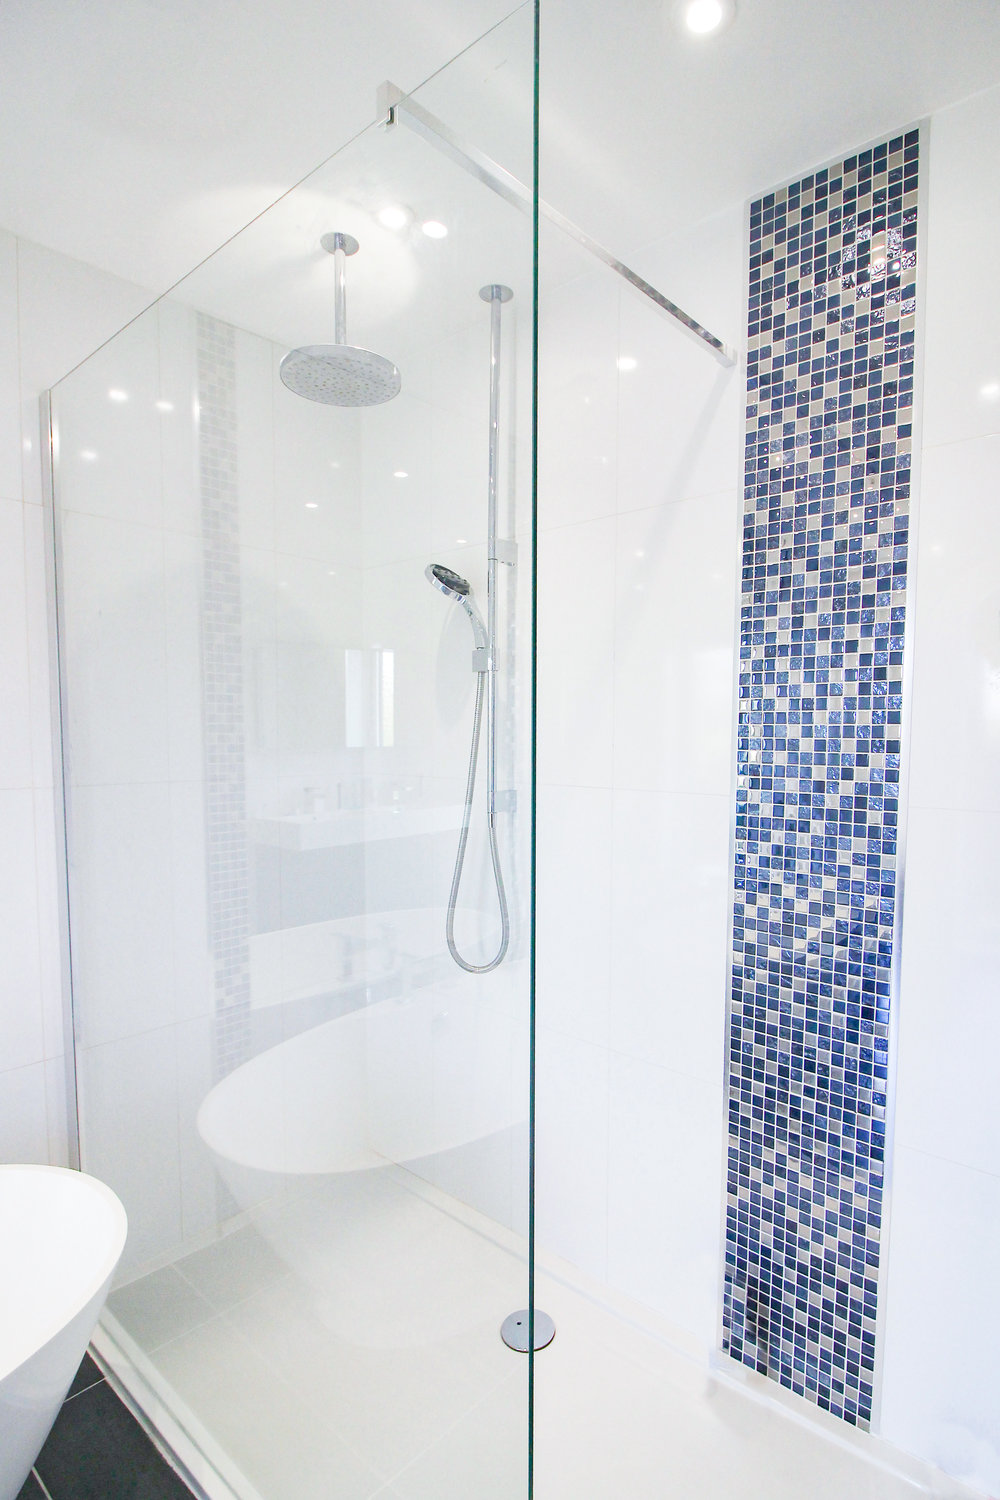 Power Shower... - Of course, you don't always have time to leisurely soak in a bathtub no matter how magnificent it may be. That's why the family bathroom also features this powerful walk-in shower which offers a deeper cleanse in half the time